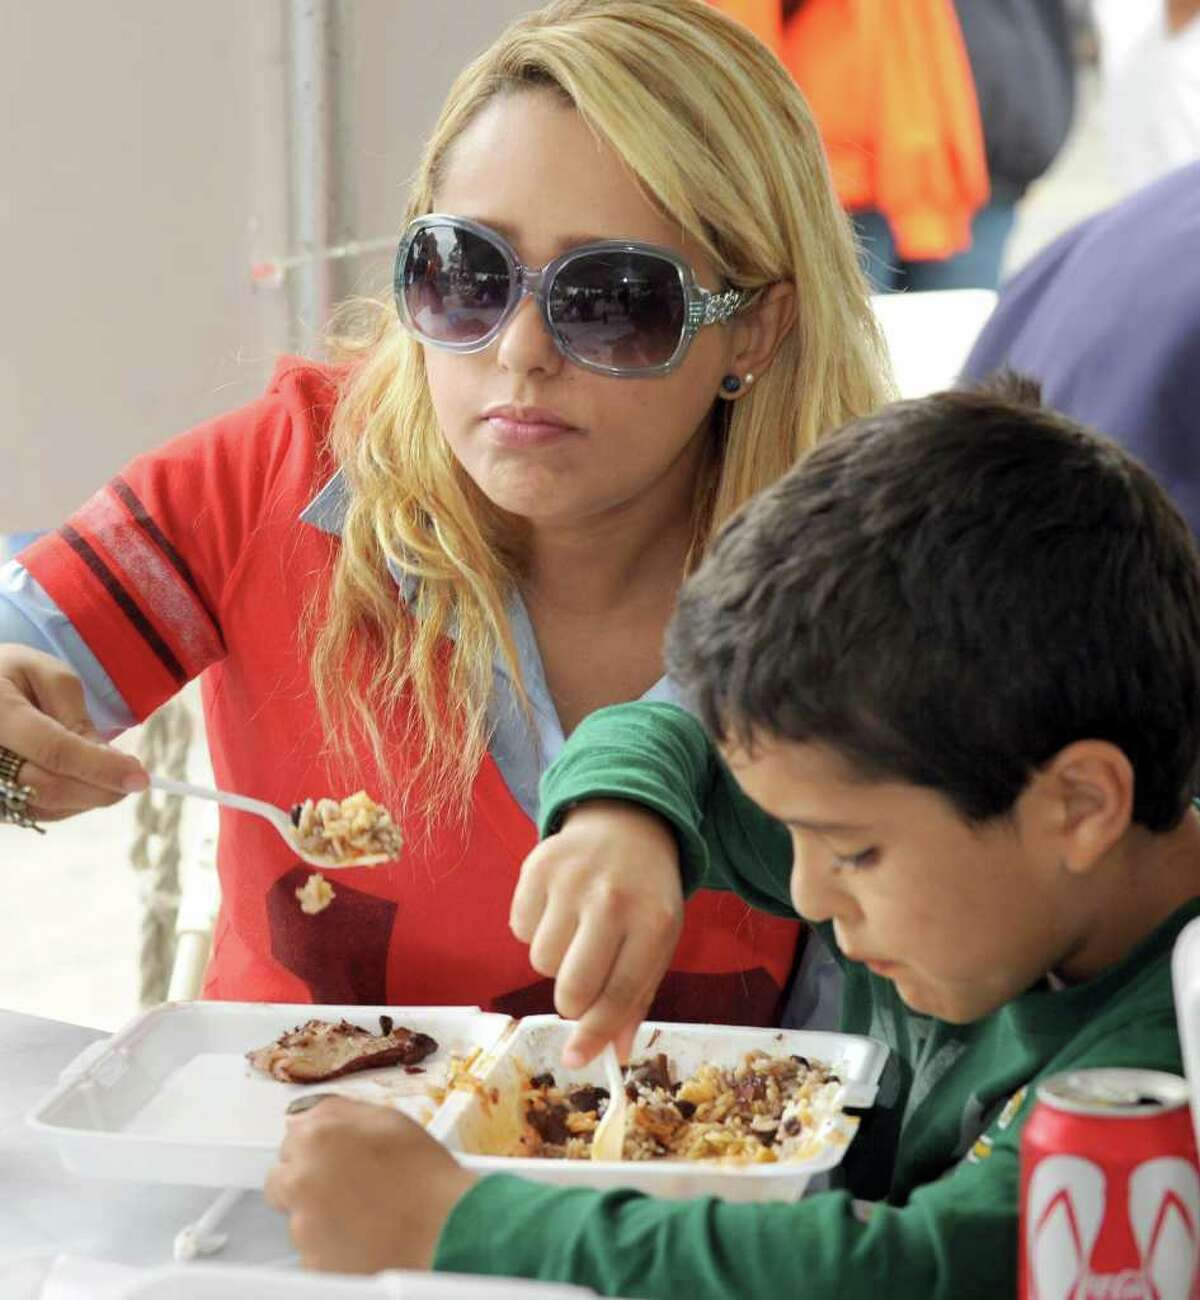 Roberta Maia of Danbury shares a Brazilian dish with her son Caleb, 8, at the Taste of Danbury Sunday, Sept. 12, 2010.